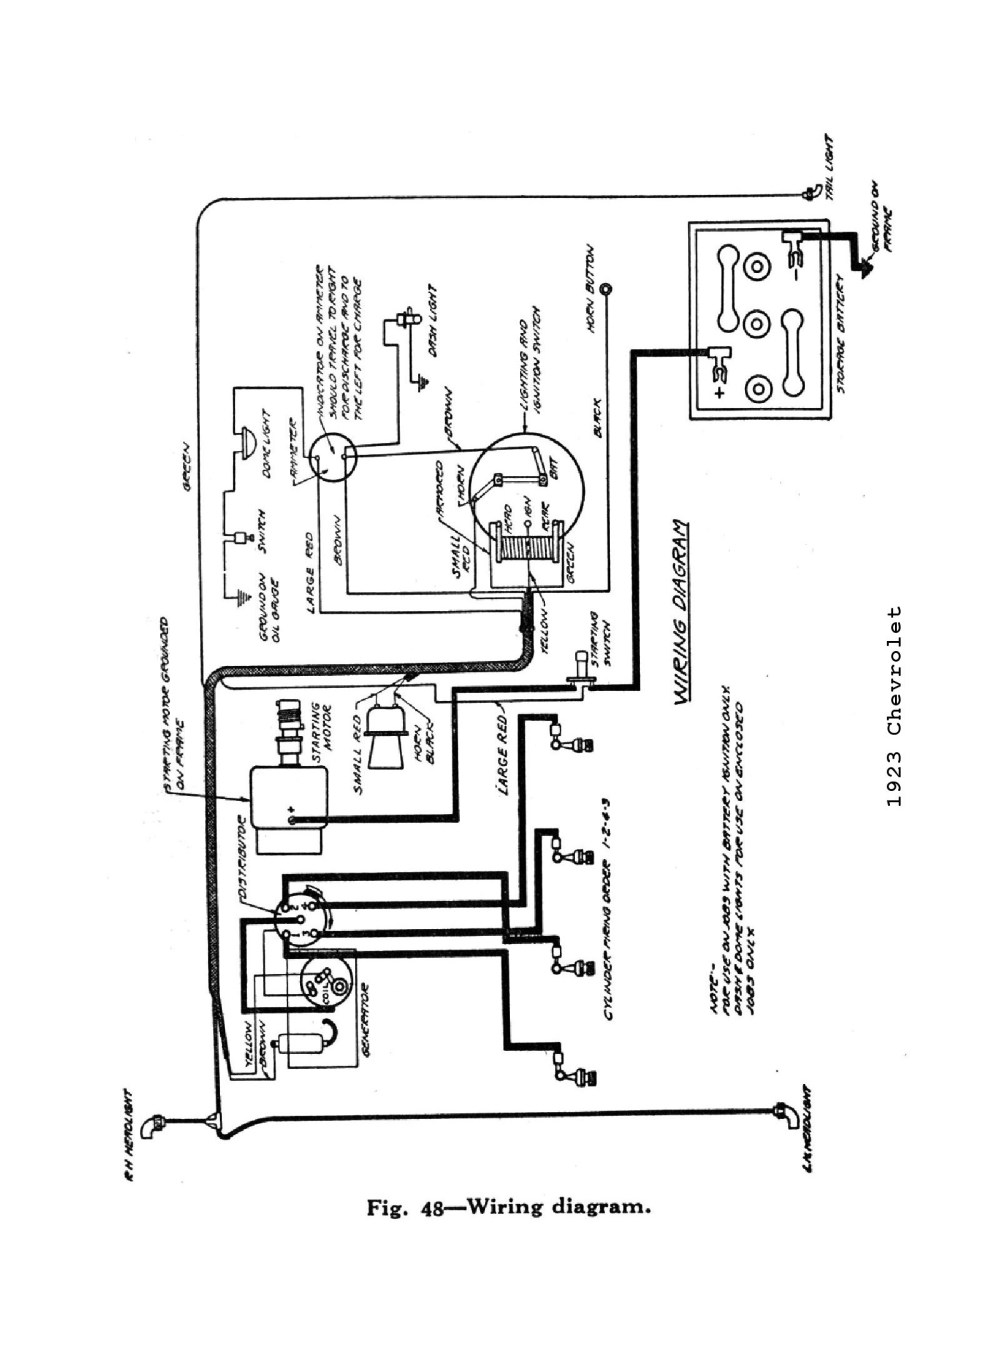 medium resolution of 1957 chevy engine wiring harness wiring diagram paper1957 chevy wiring harness for ignition electrical wiring diagram